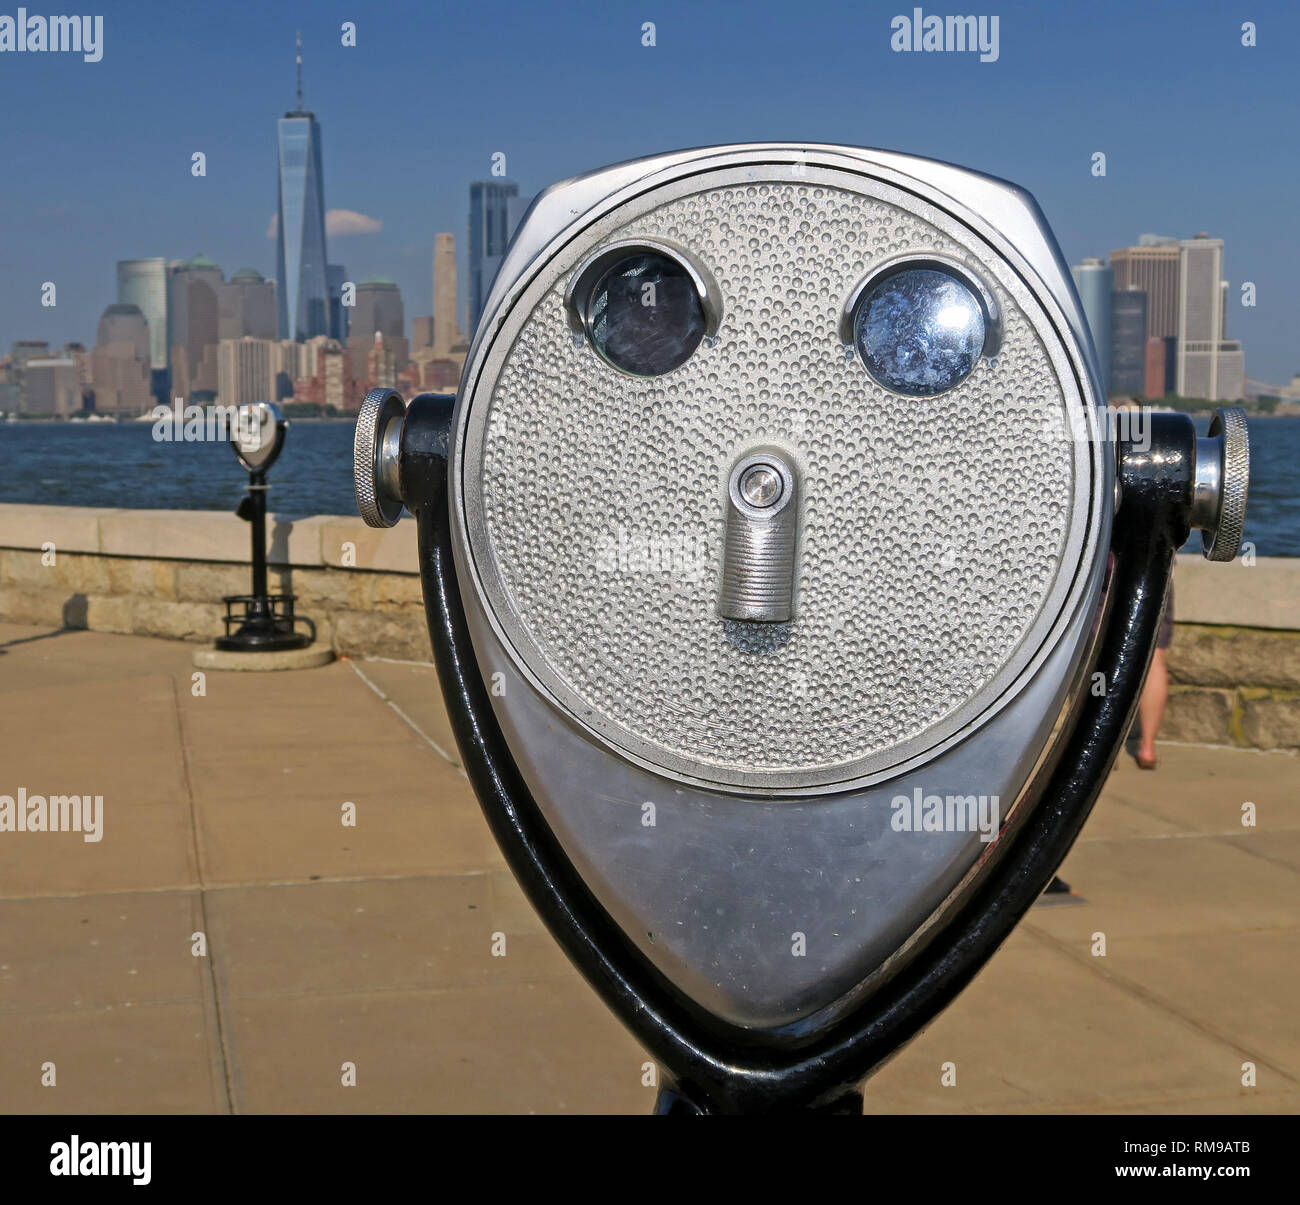 Silver / Steel PayToView coin operated binoculars, Ellis Island, New York Harbour, view of lower Manhattan, NYC, USA, United States of America - Stock Image